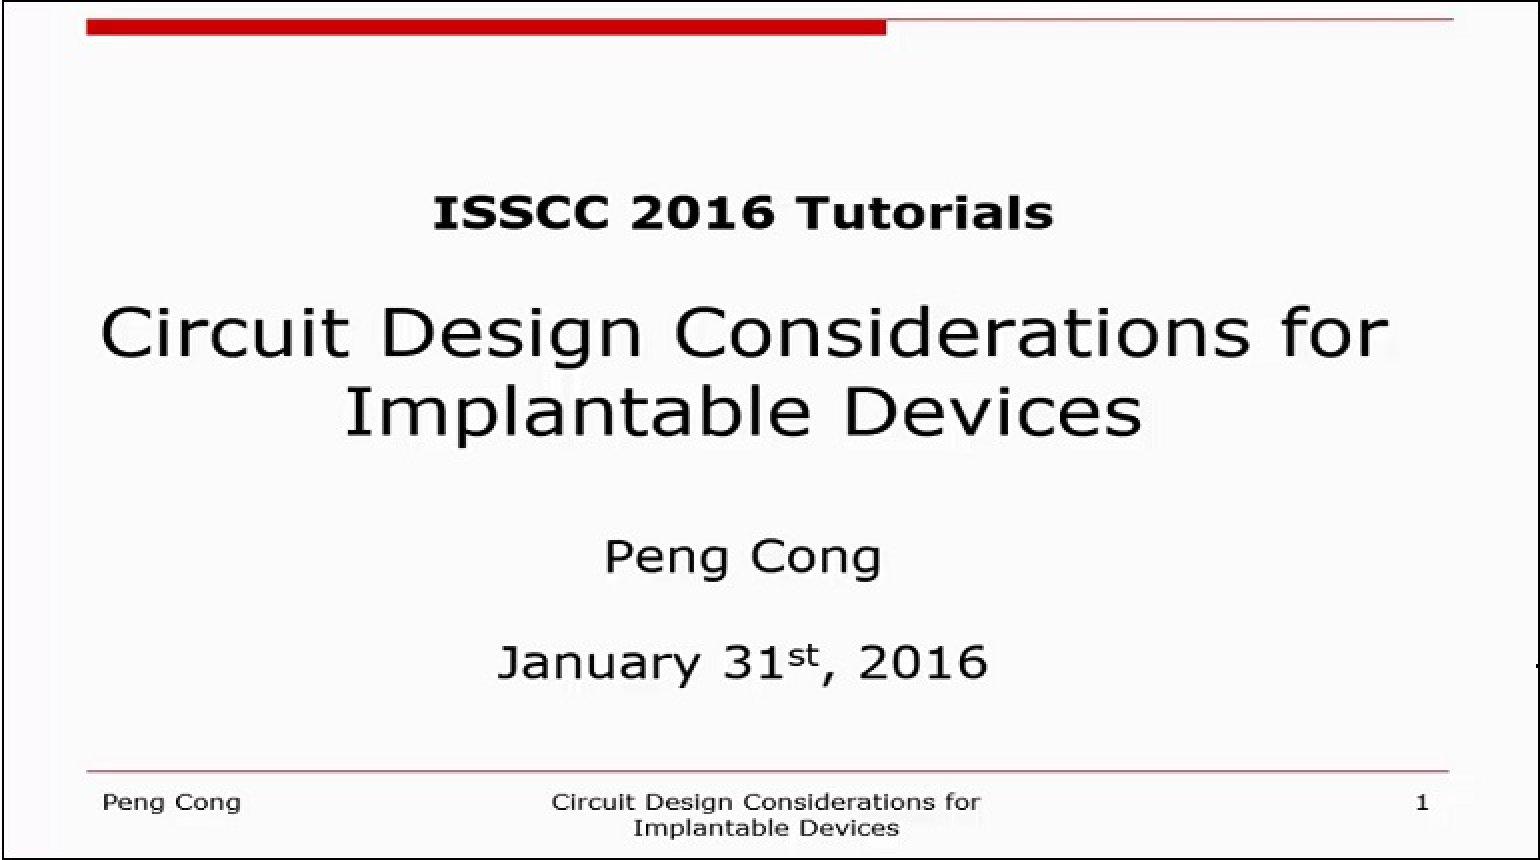 Circuit Design Considerations for Implantable Devices Video